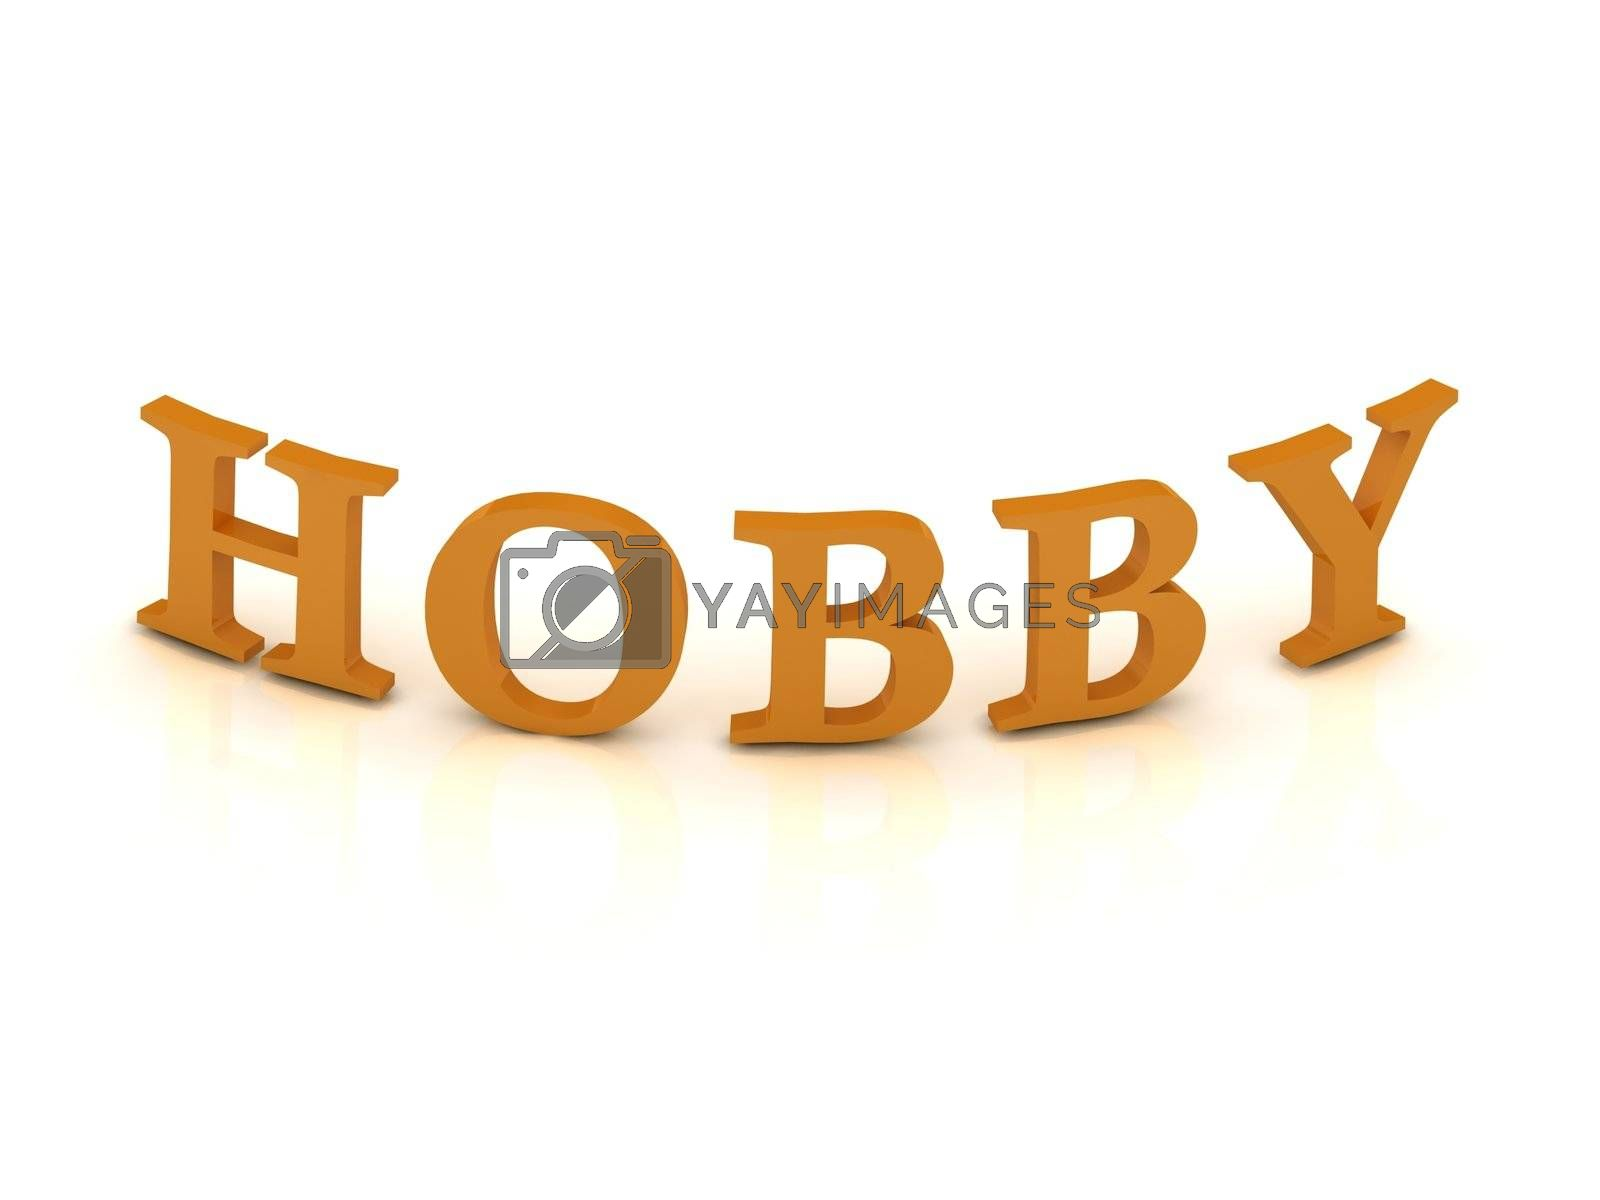 HOBBY sign with orange letters  by GreenM